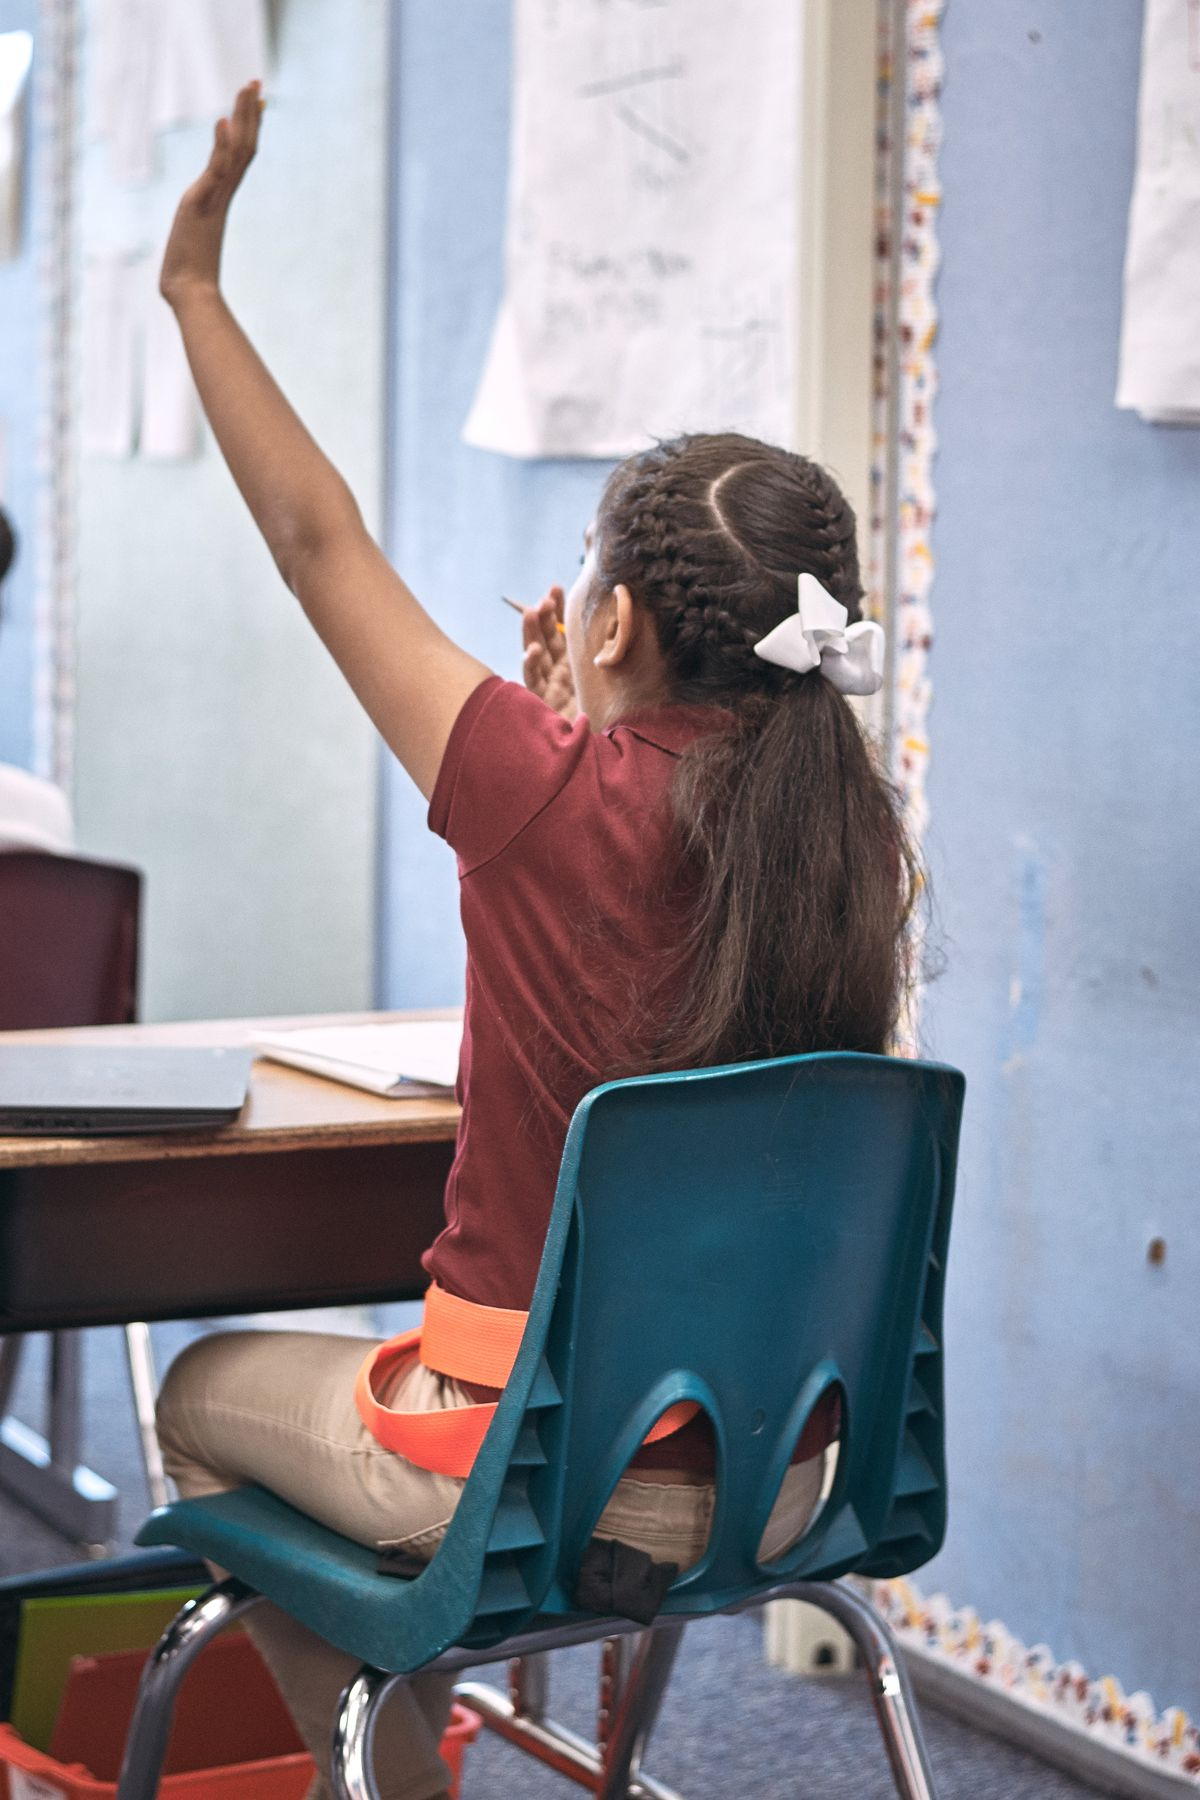 A McGlone student raises her hand in class.